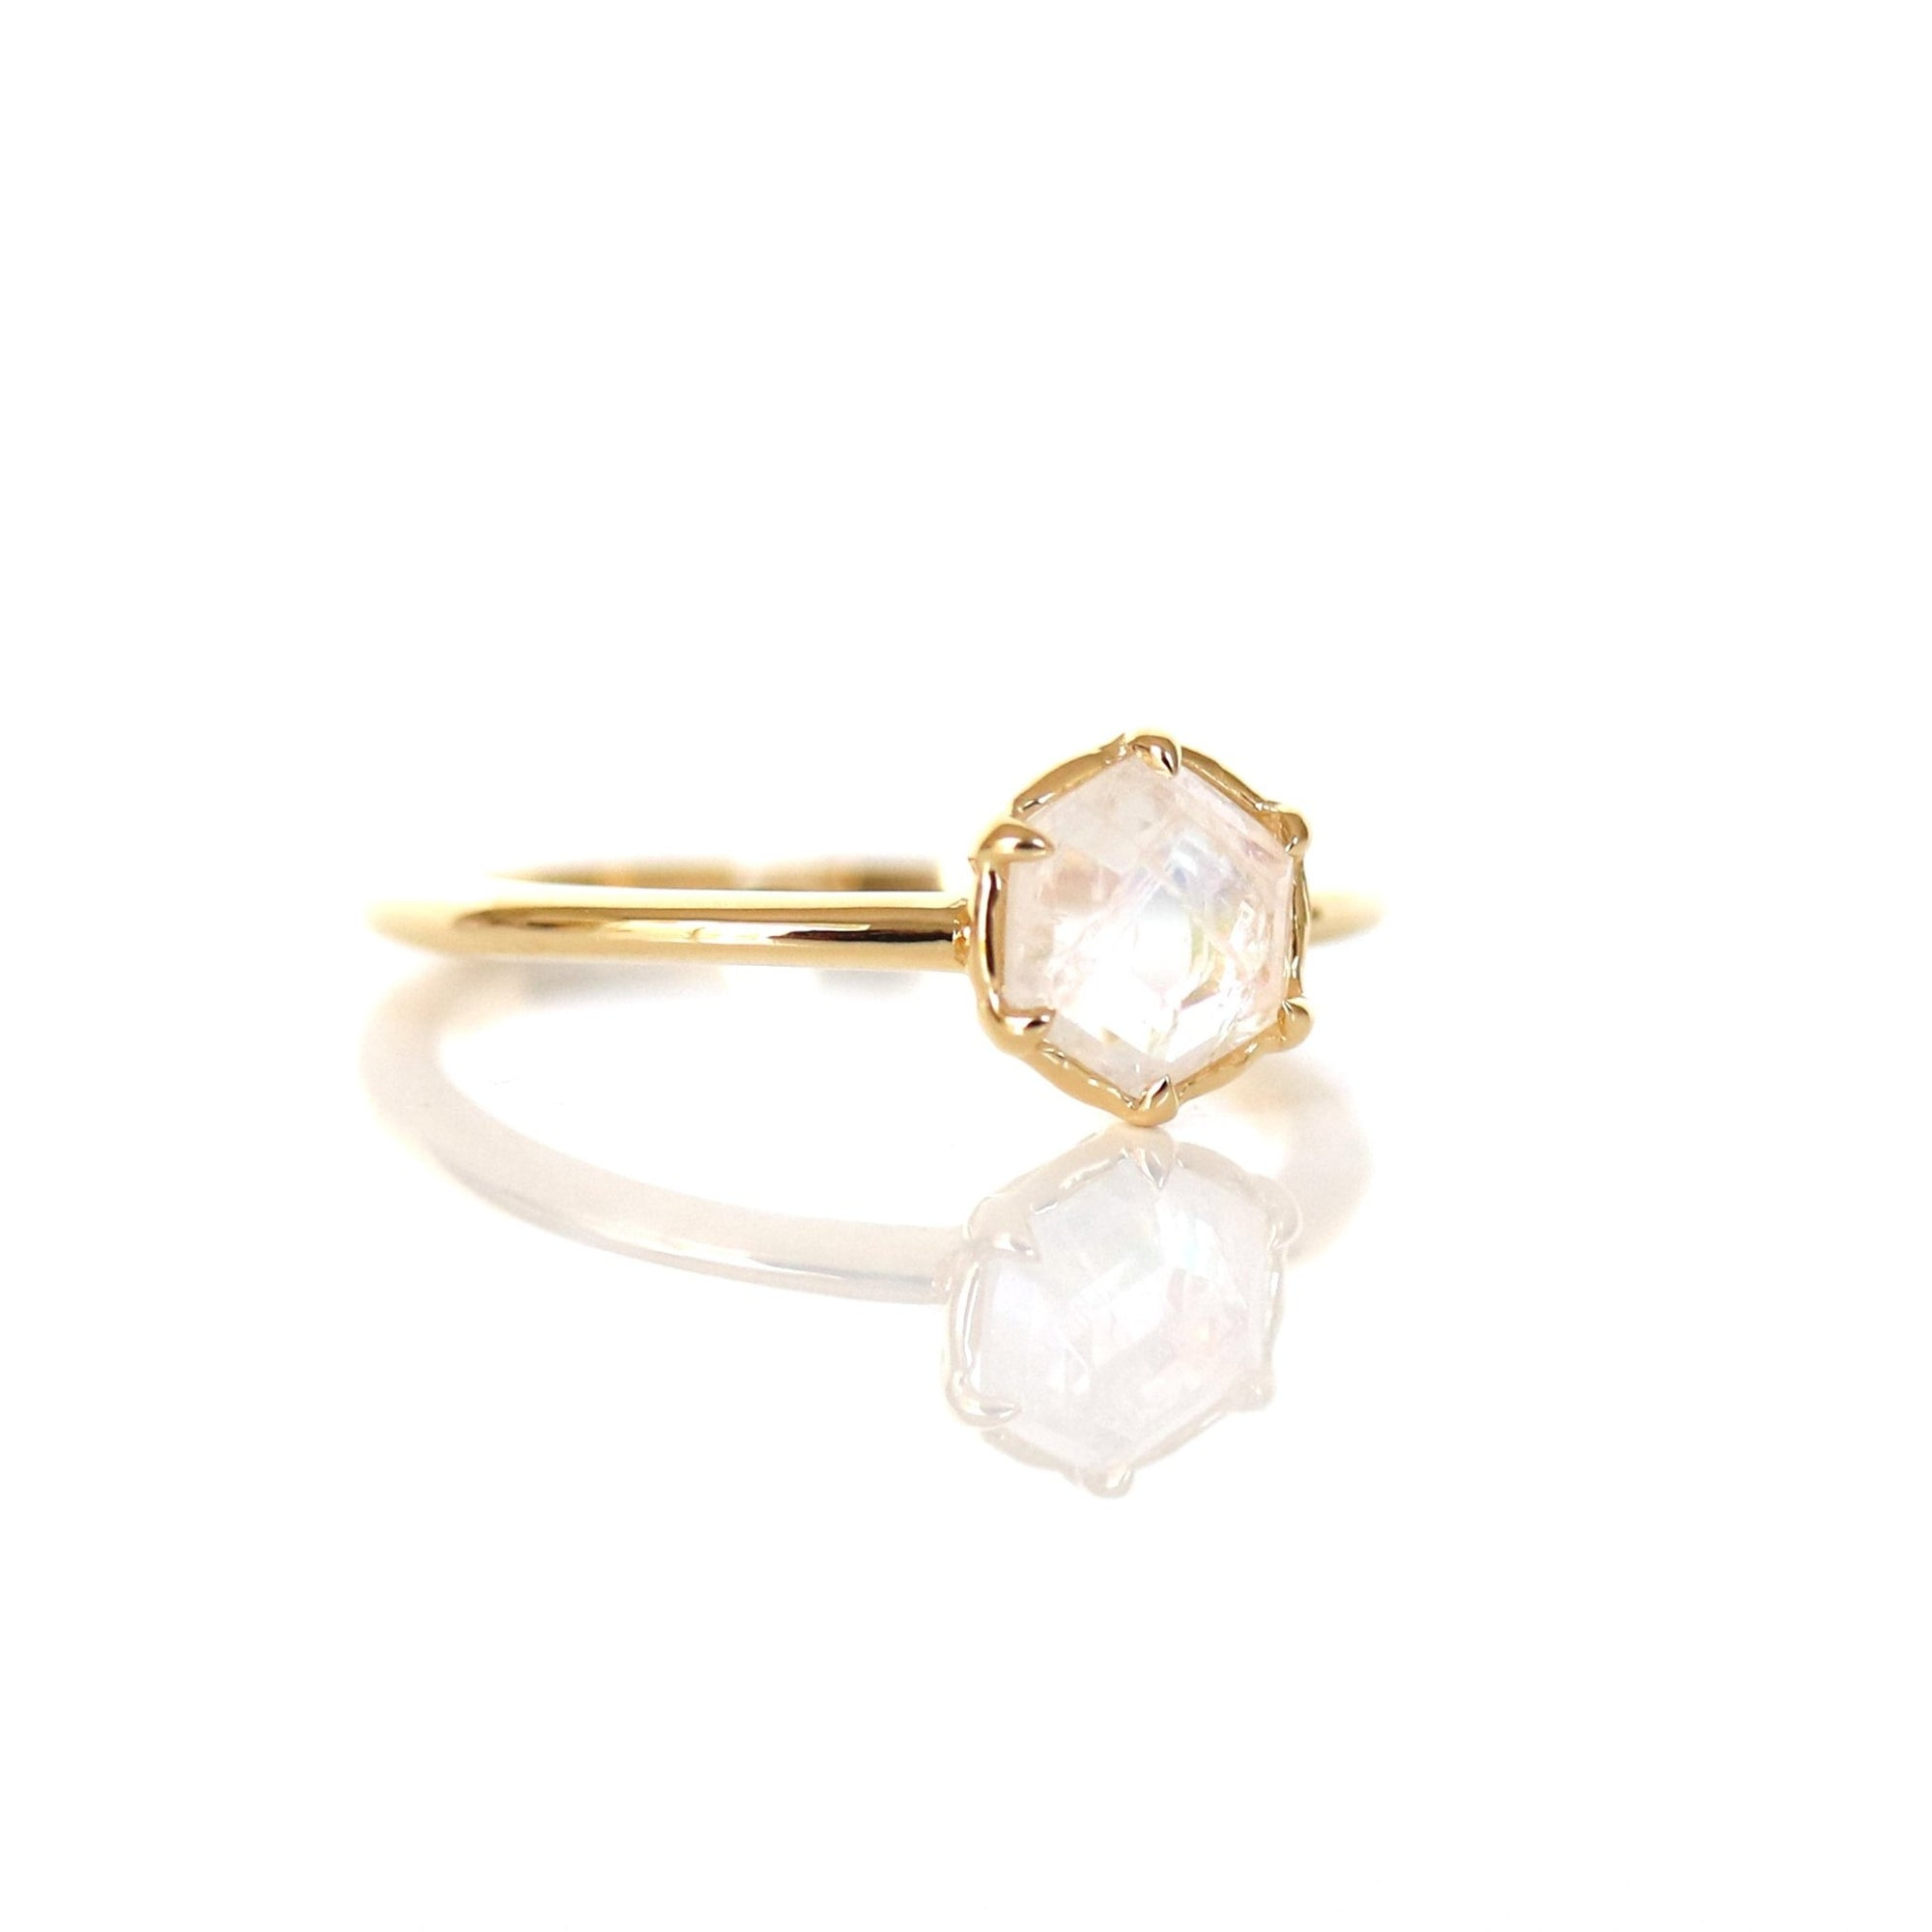 GRACE RING RAINBOW MOONSTONE & GOLD - SO PRETTY CARA COTTER